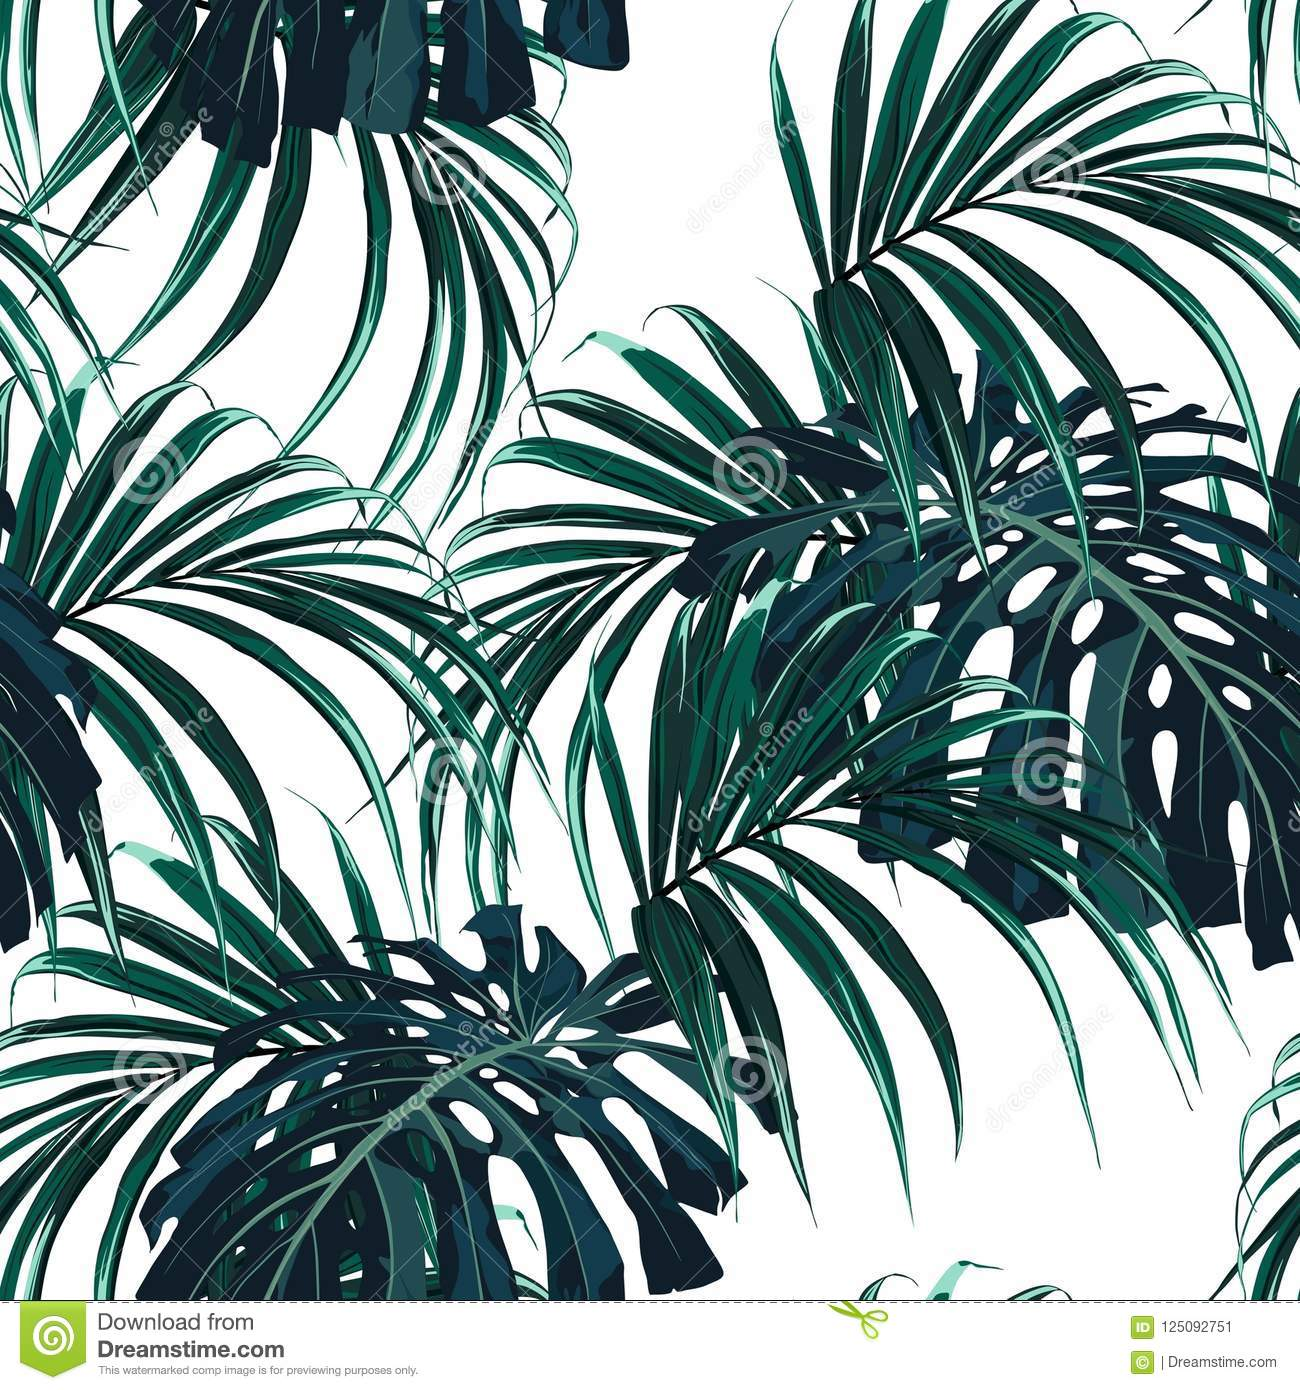 Seamless Vector Tropical Pattern With Dark Green Palm Leaves On White Background Stock Illustration Illustration Of Bird Dark 125092751 Free for commercial use no attribution required high quality images. https www dreamstime com seamless vector tropical pattern dark green palm leaves white background tropical background jungle plants seamless image125092751